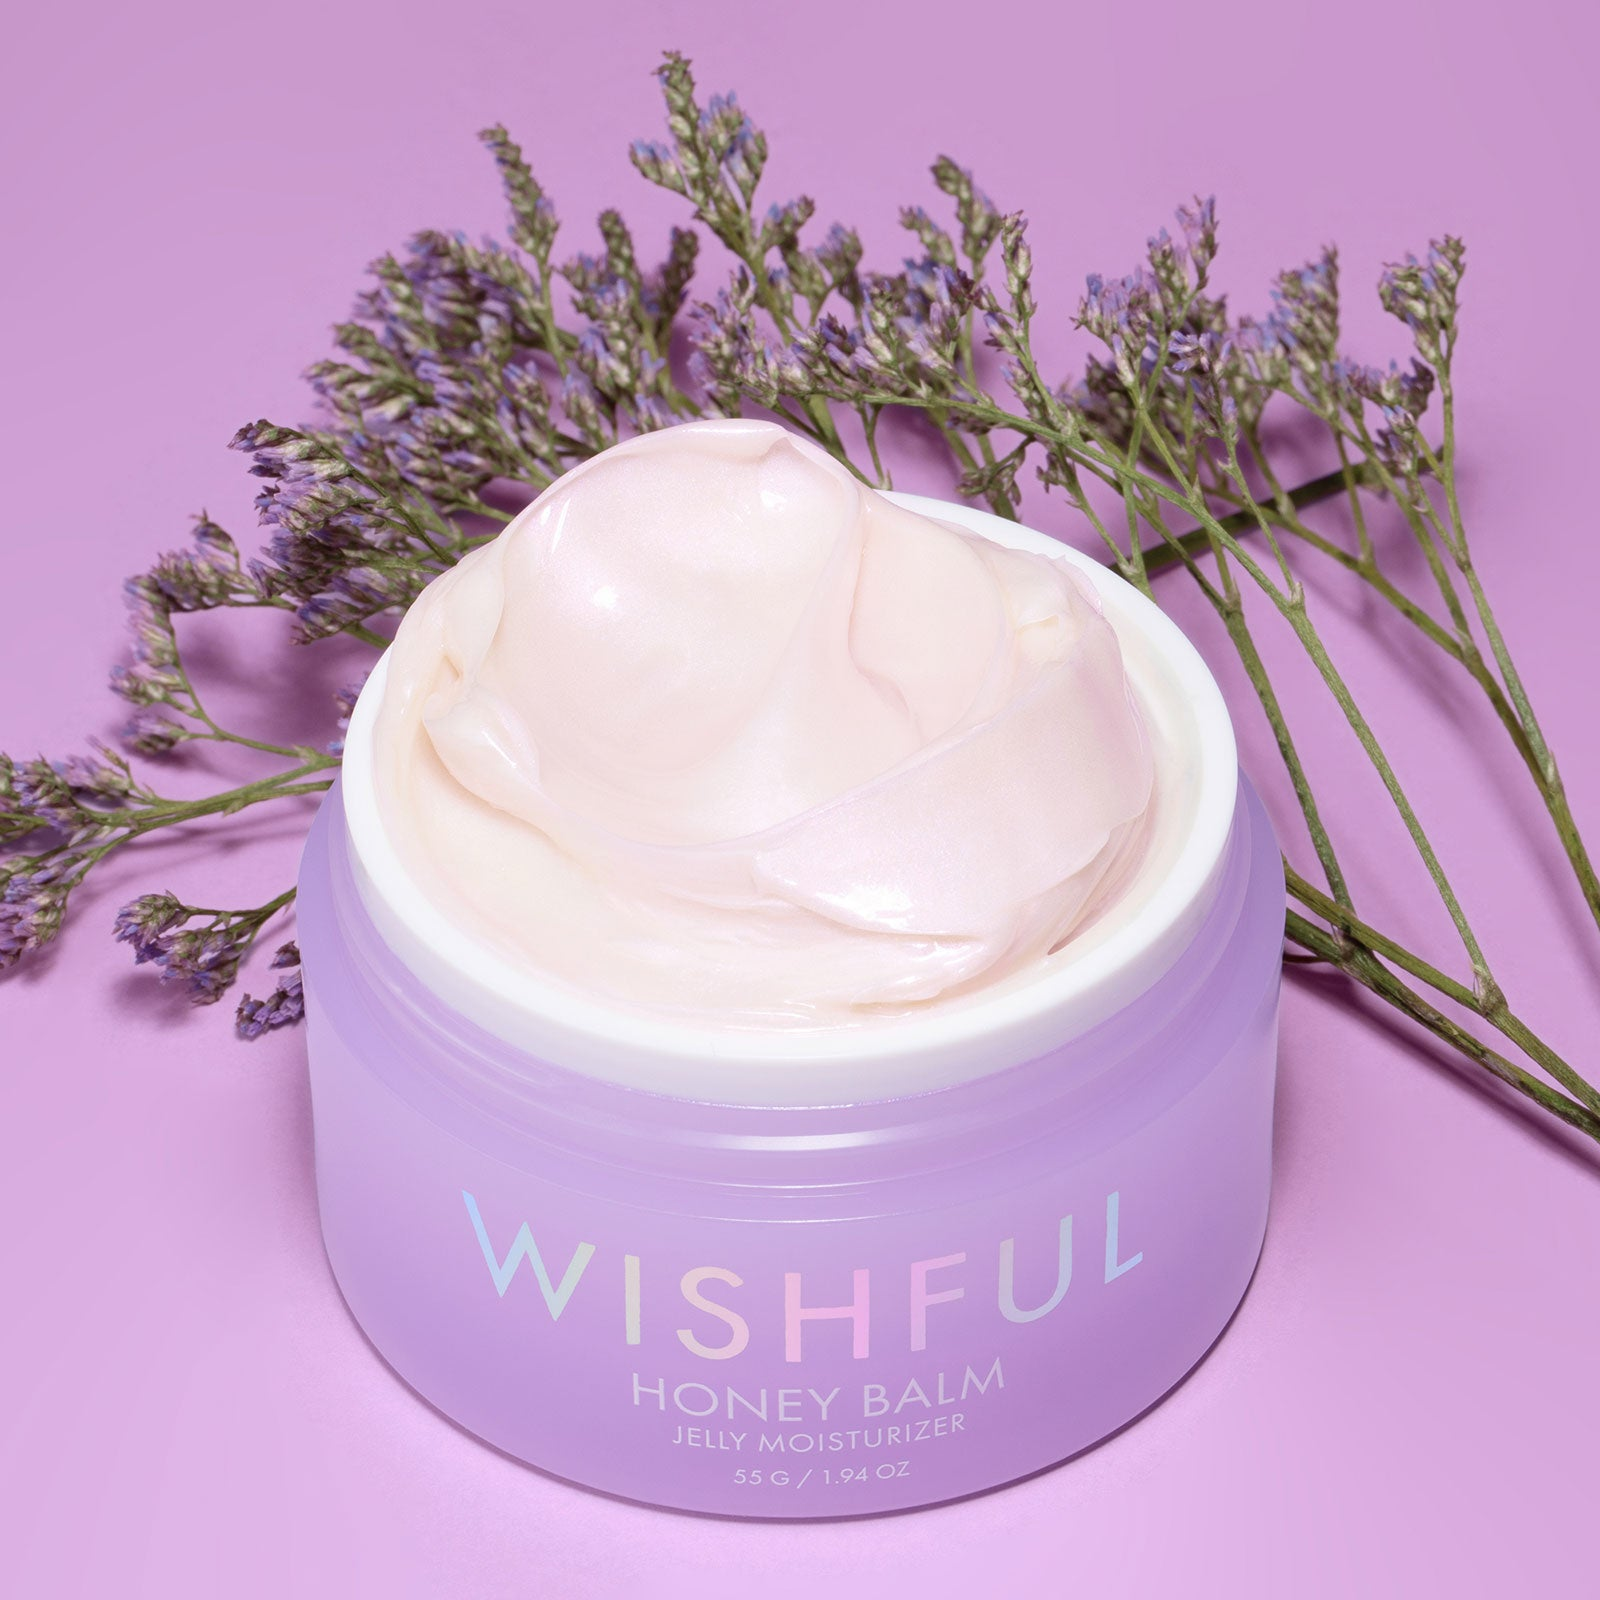 Wishful Honey Balm Moisturiser 55g